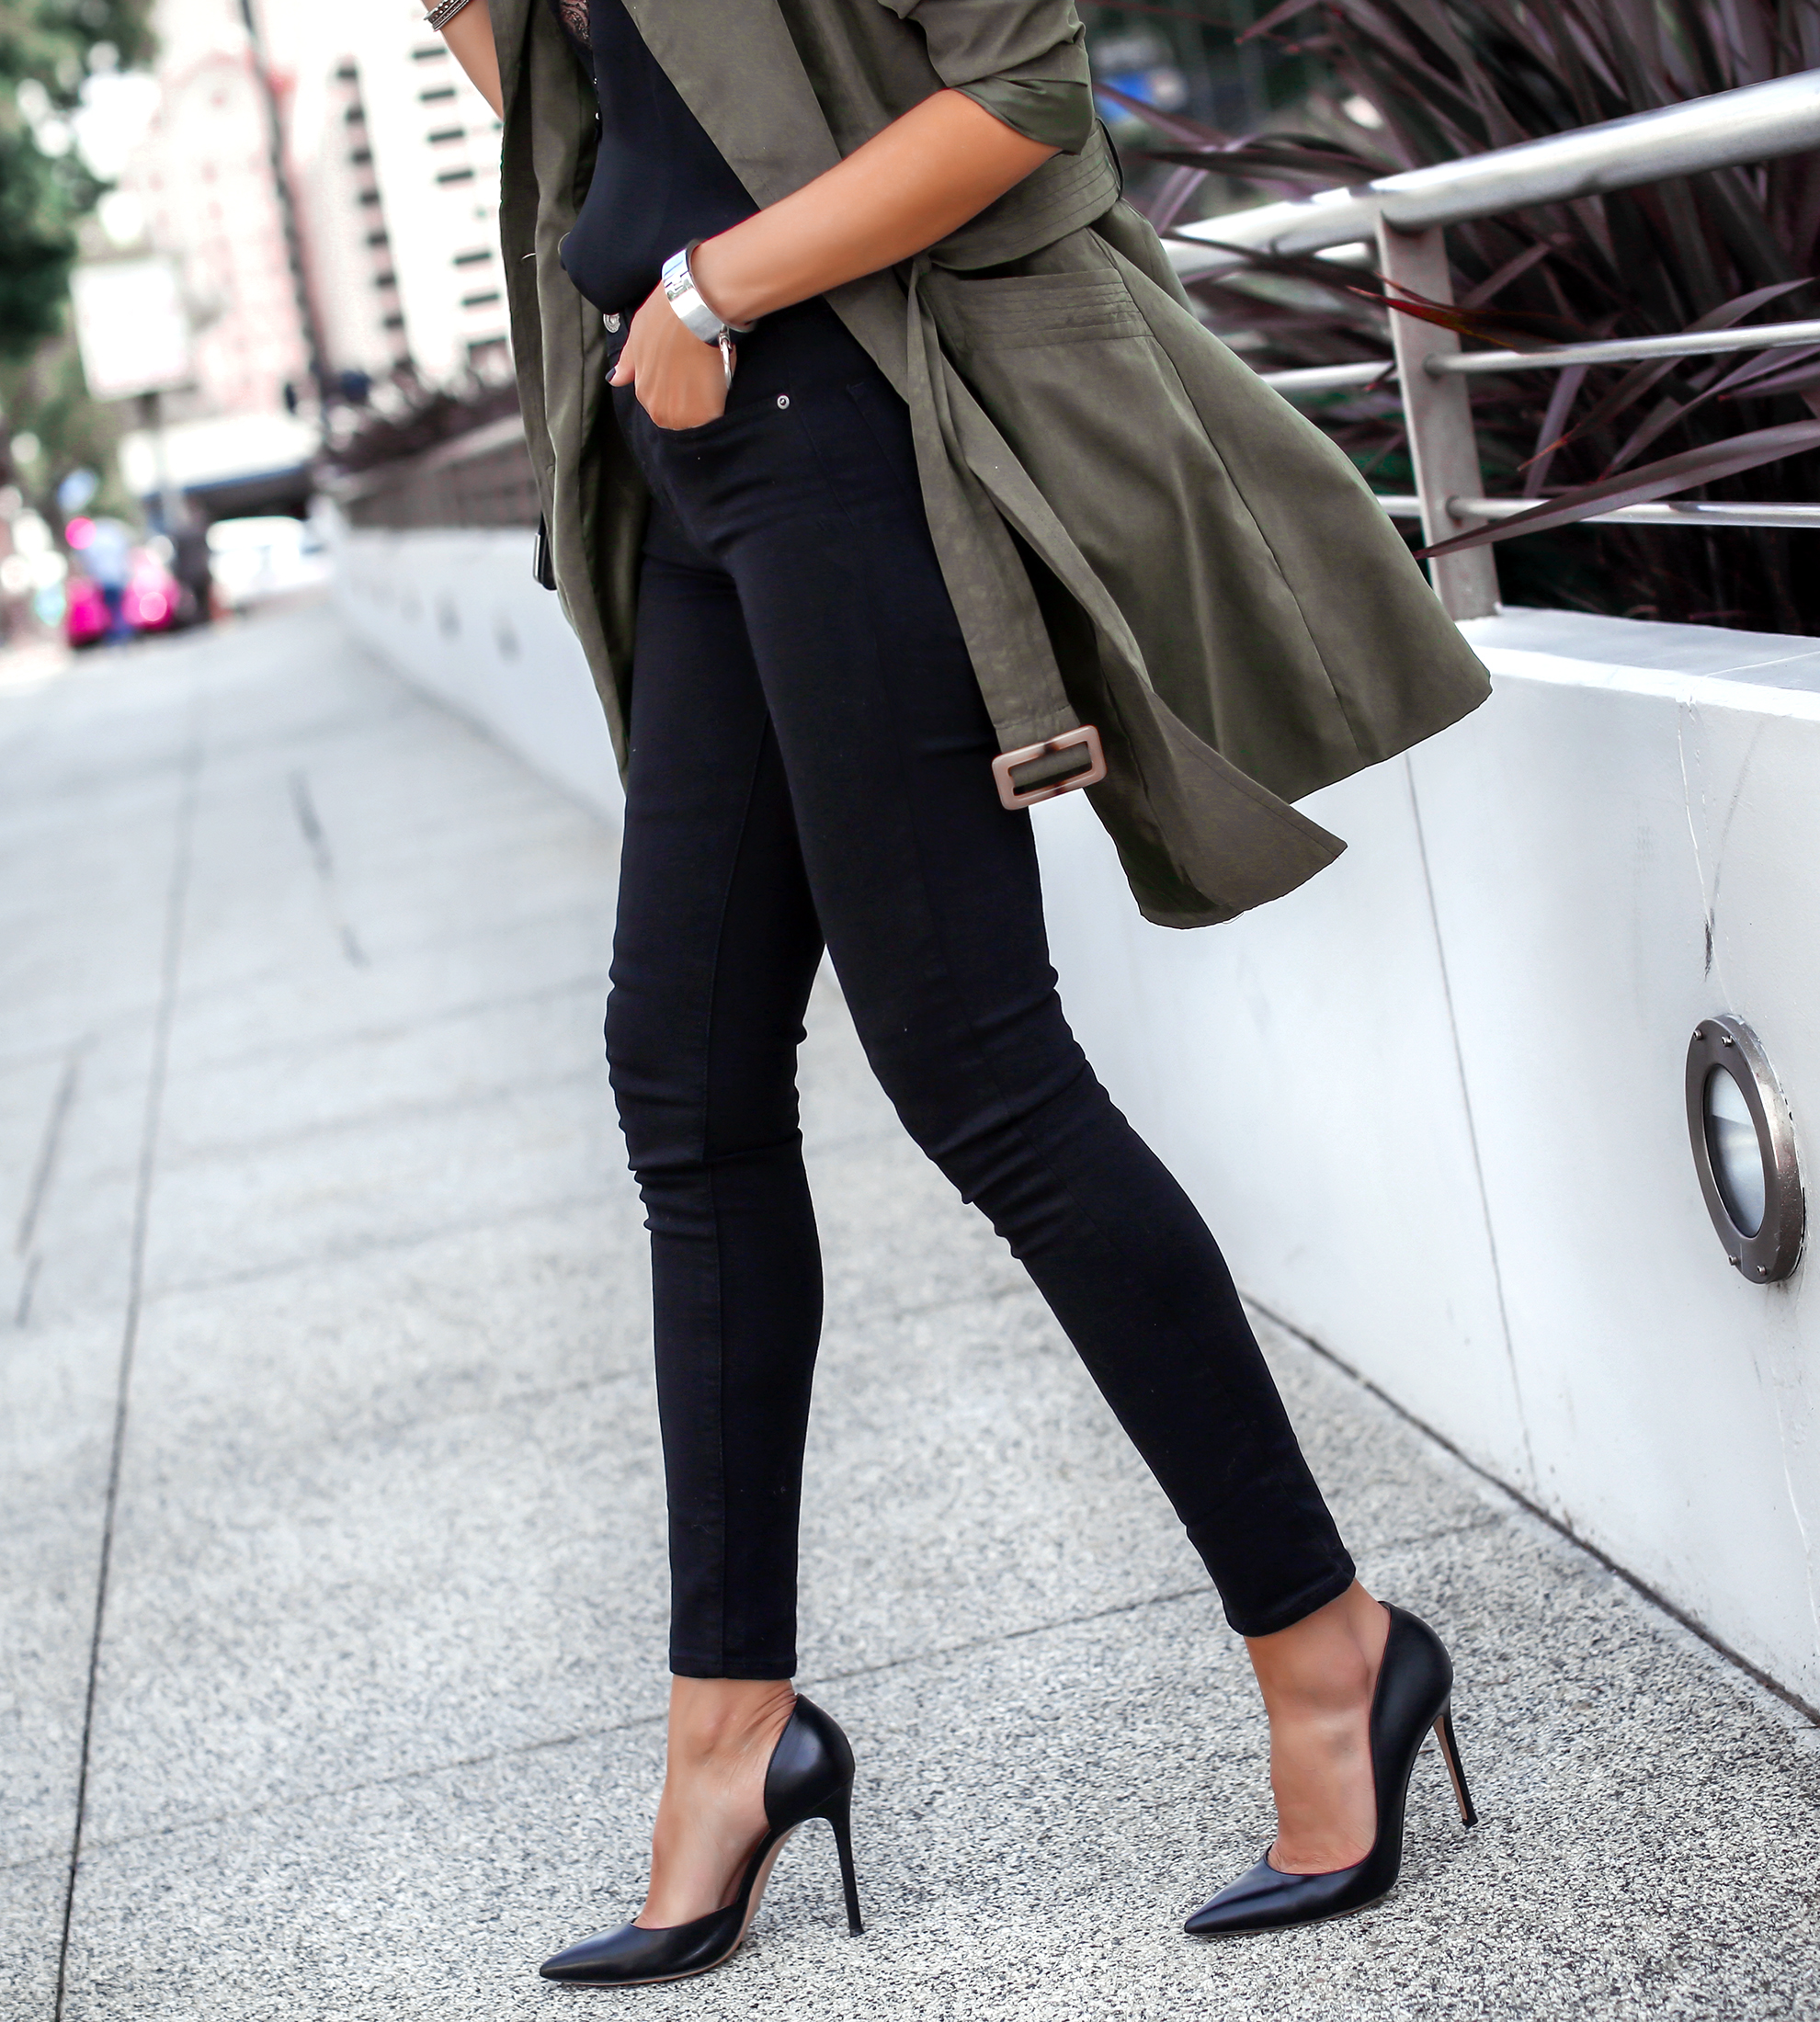 Woman Walking in Trench and Heels